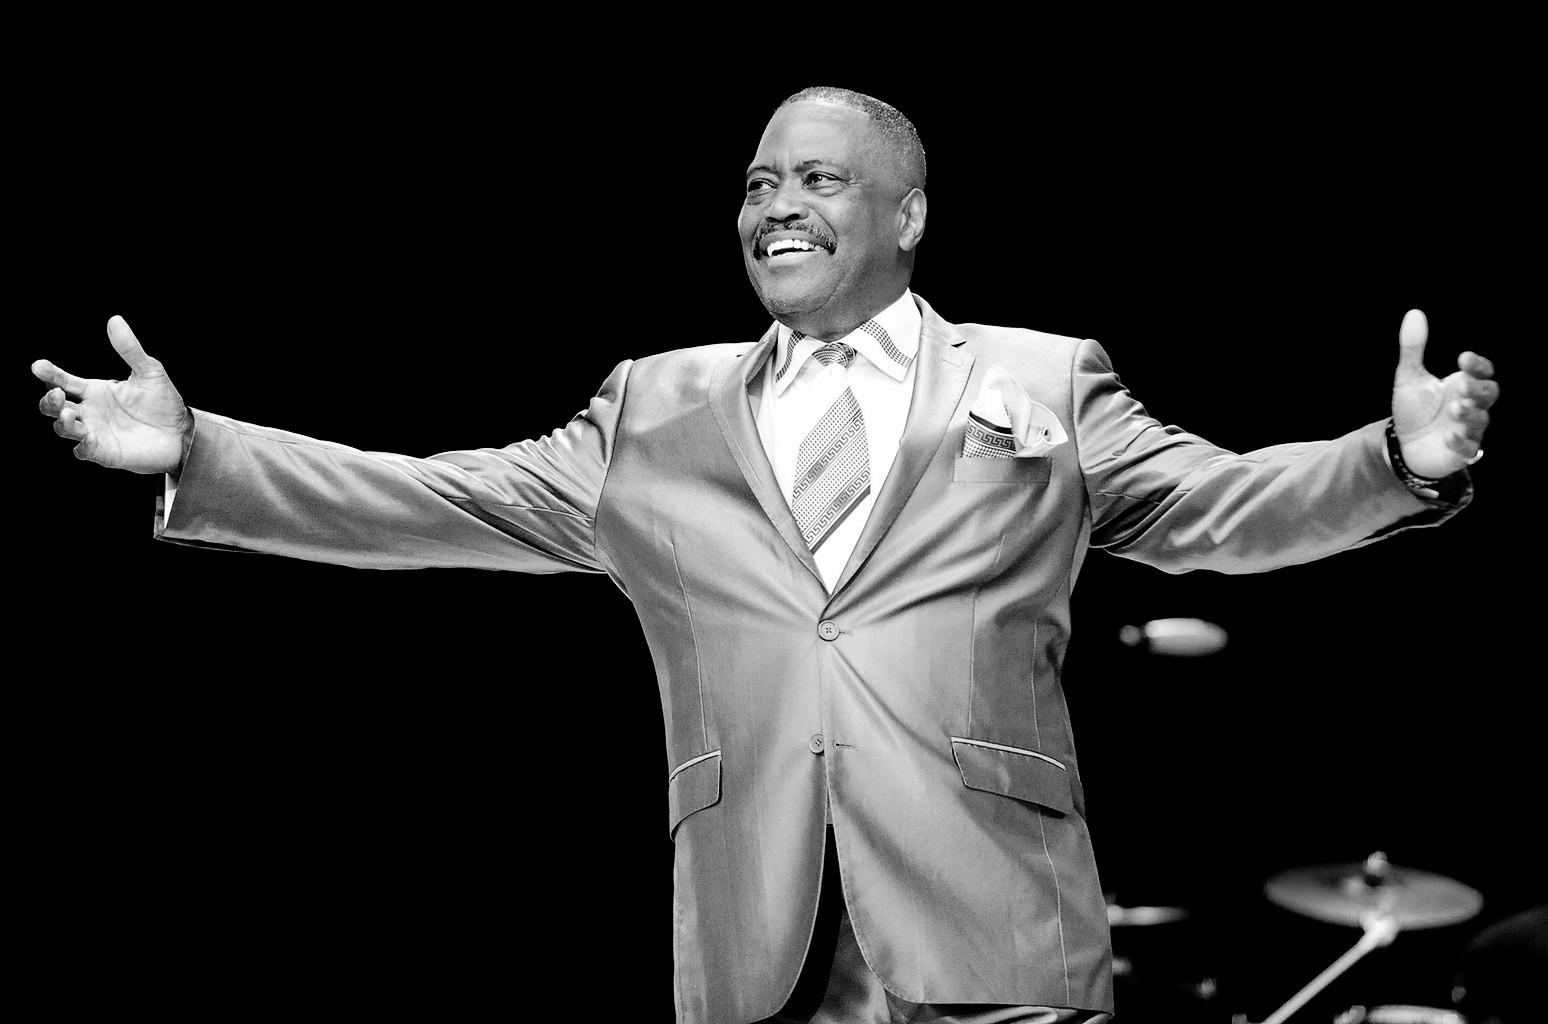 Cuba Gooding, Sr. of The Main Ingredient performs at Chastain Park Amphitheater on July 10, 2013 in Atlanta.